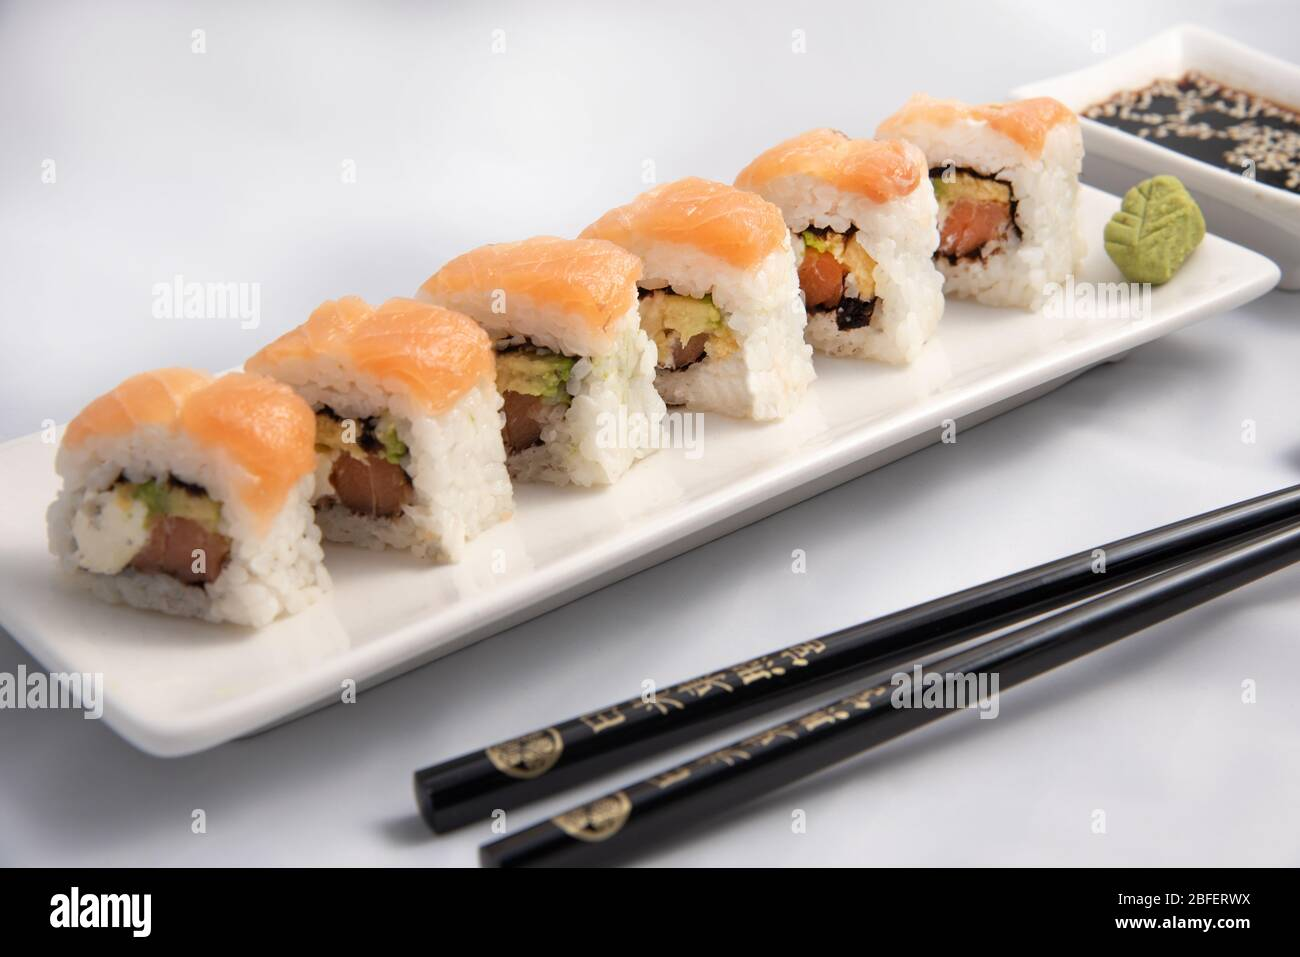 Sushi Roll With Pink Salmon Wrap Grilled Salmon Philadelphia Cheese And Avocado White Container And Black Chopsticks Stock Photo Alamy